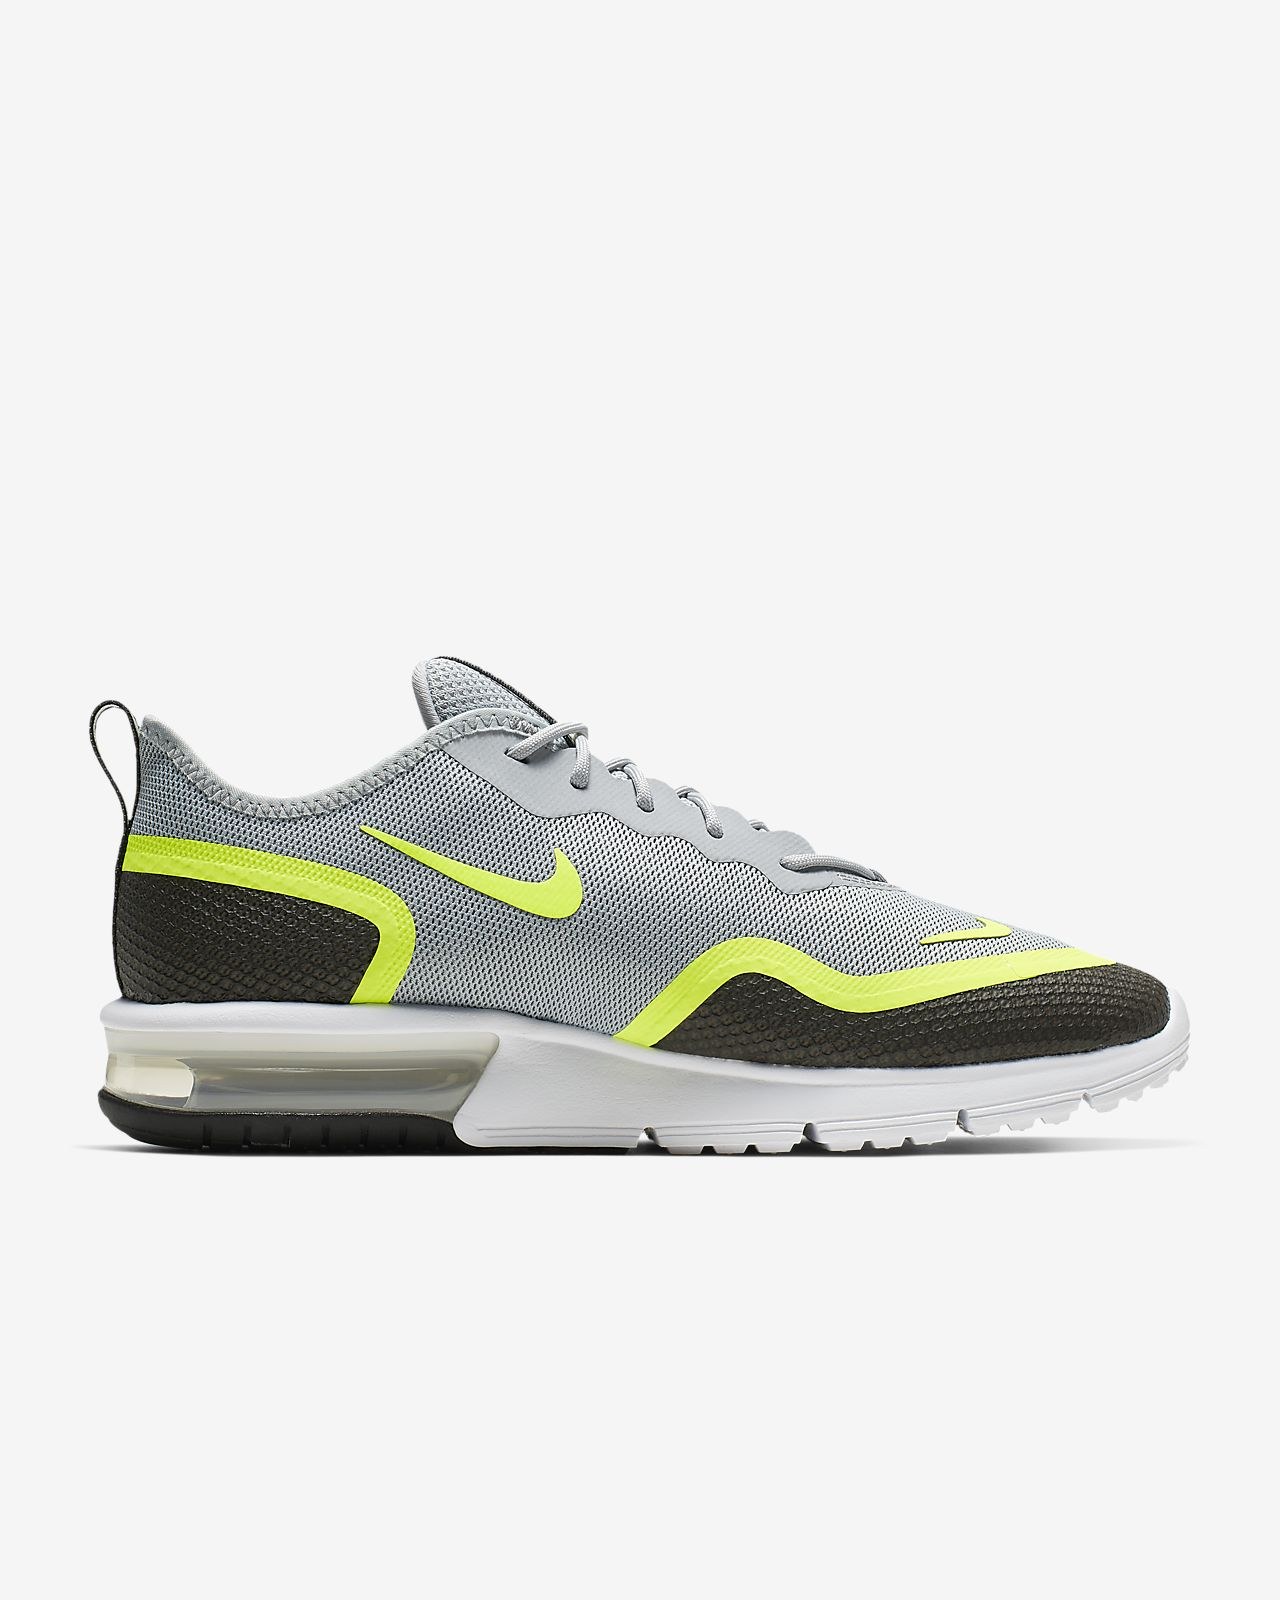 8d916c66c07 Nike Air Max Sequent 4.5 SE Herenschoen. Nike.com NL